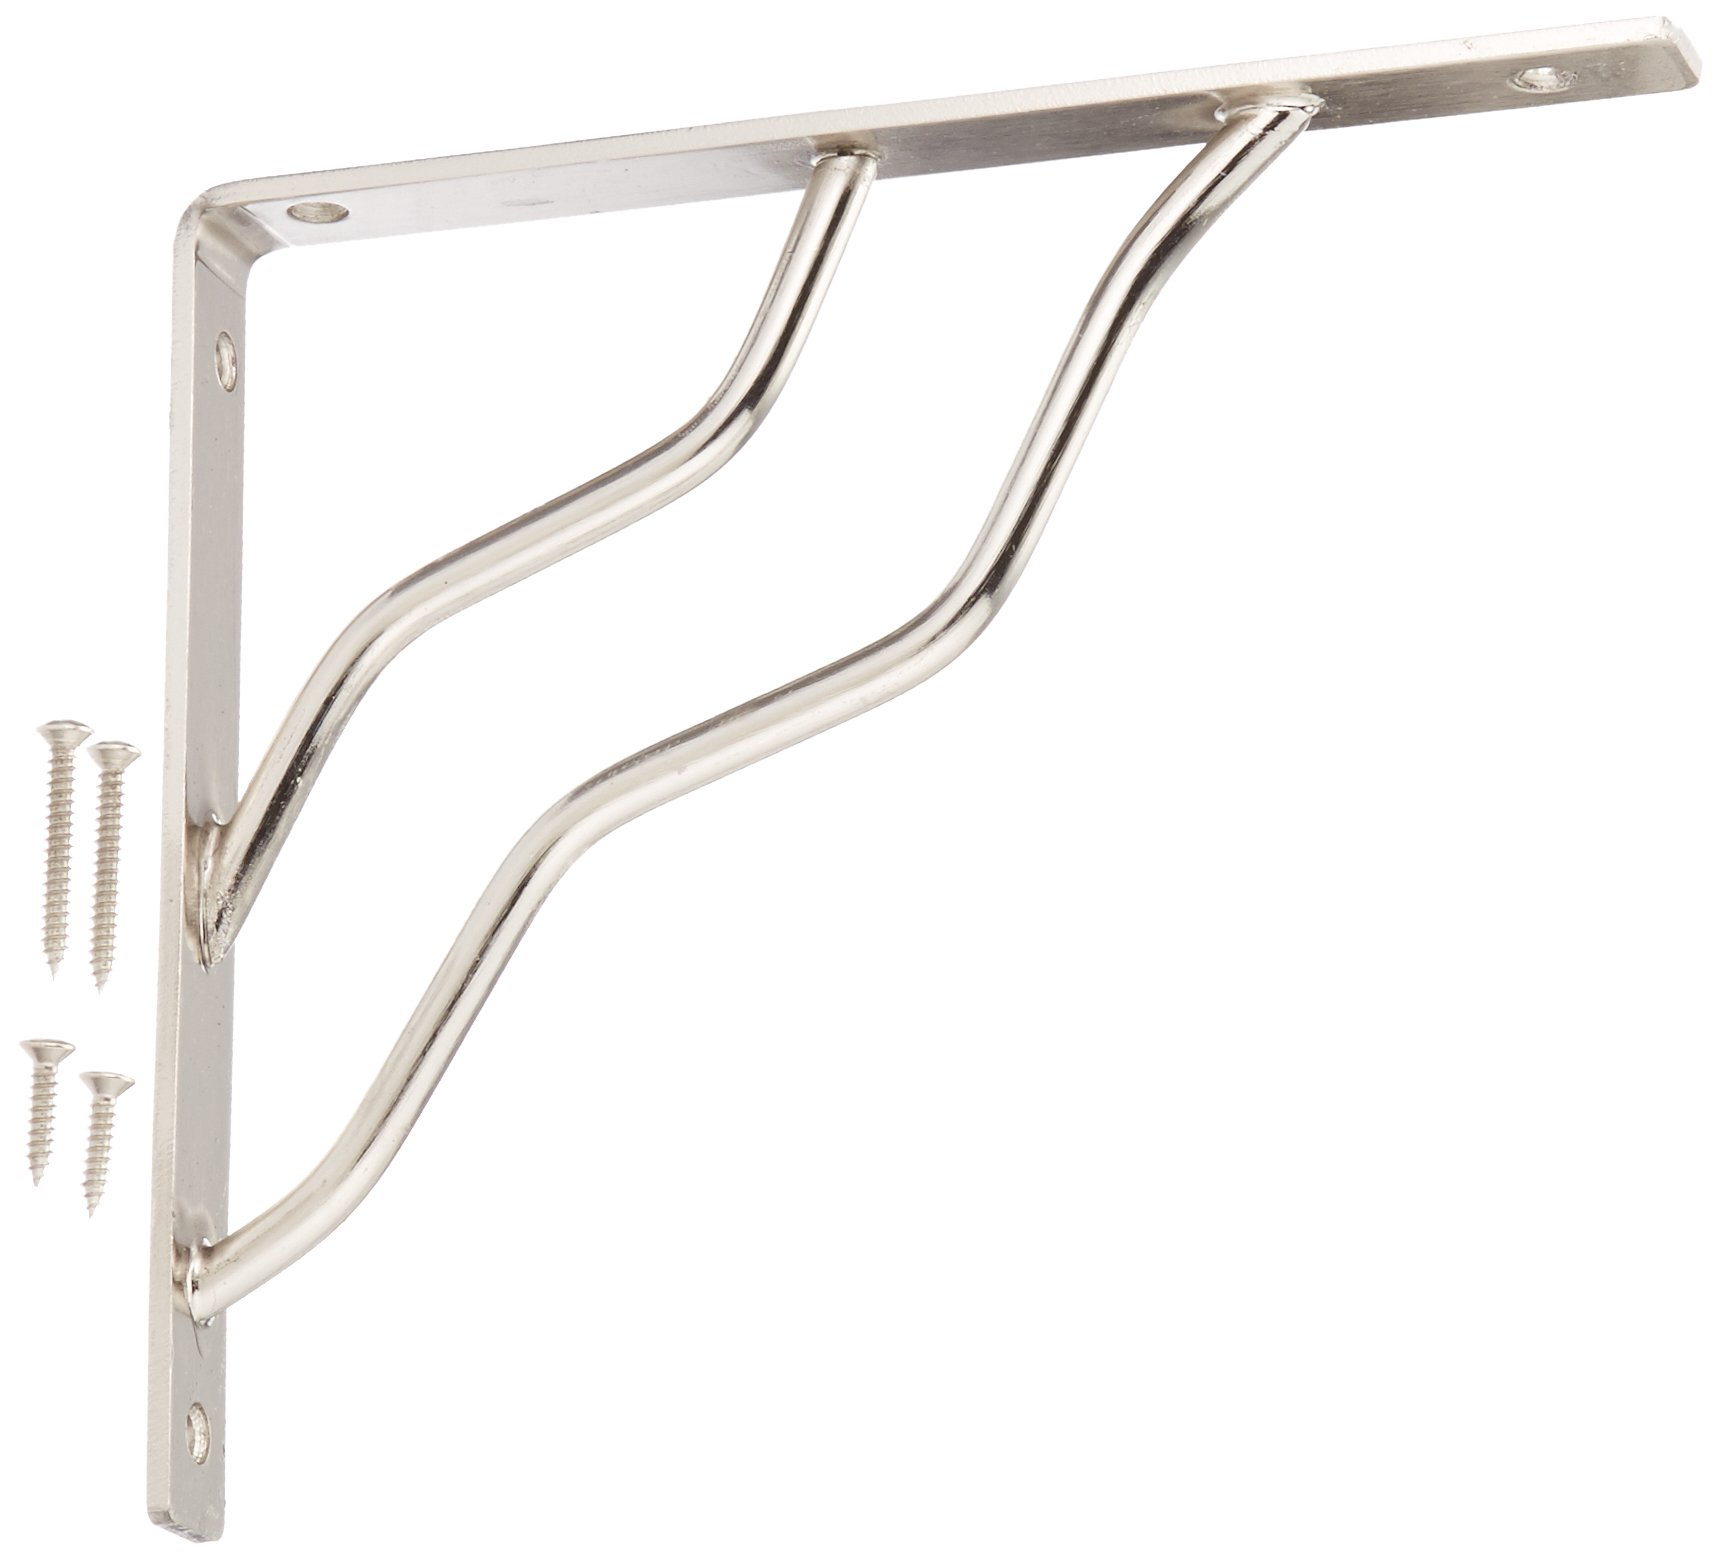 Stanley Hardware S250-597 773 Ornamental Shelf Brackets in Nickel , 7'' x 8''